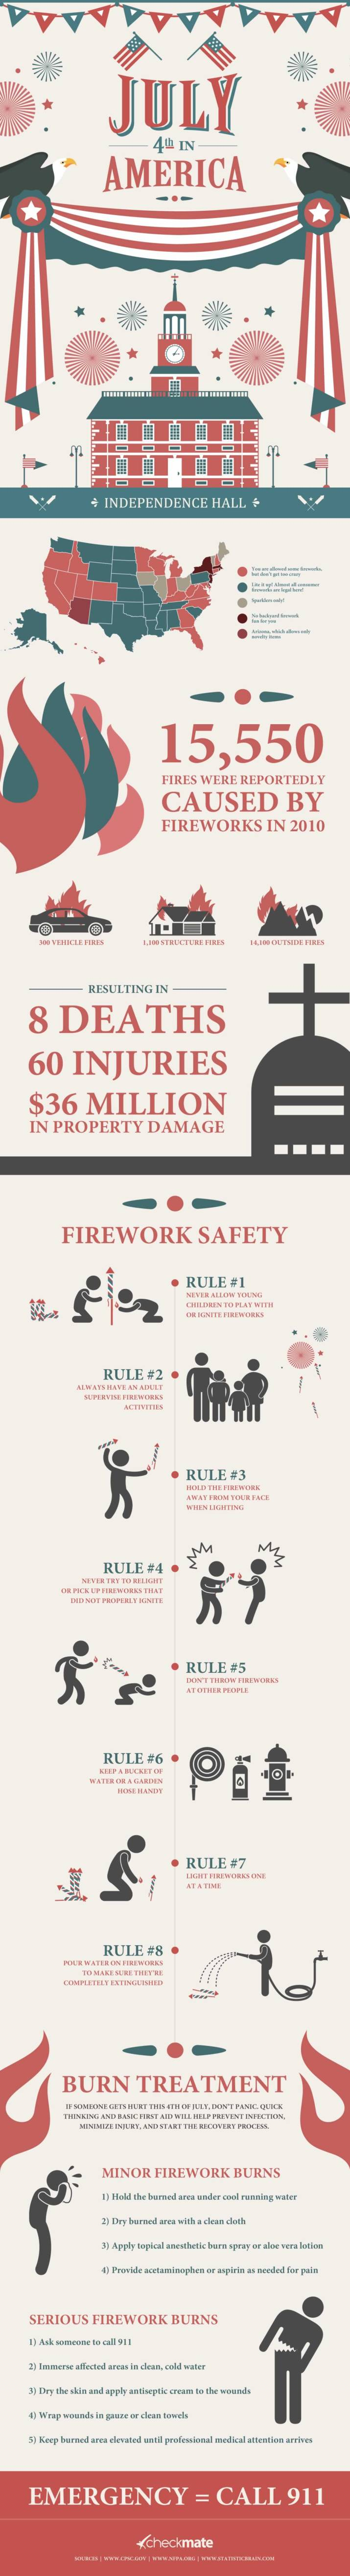 fireworks-safety